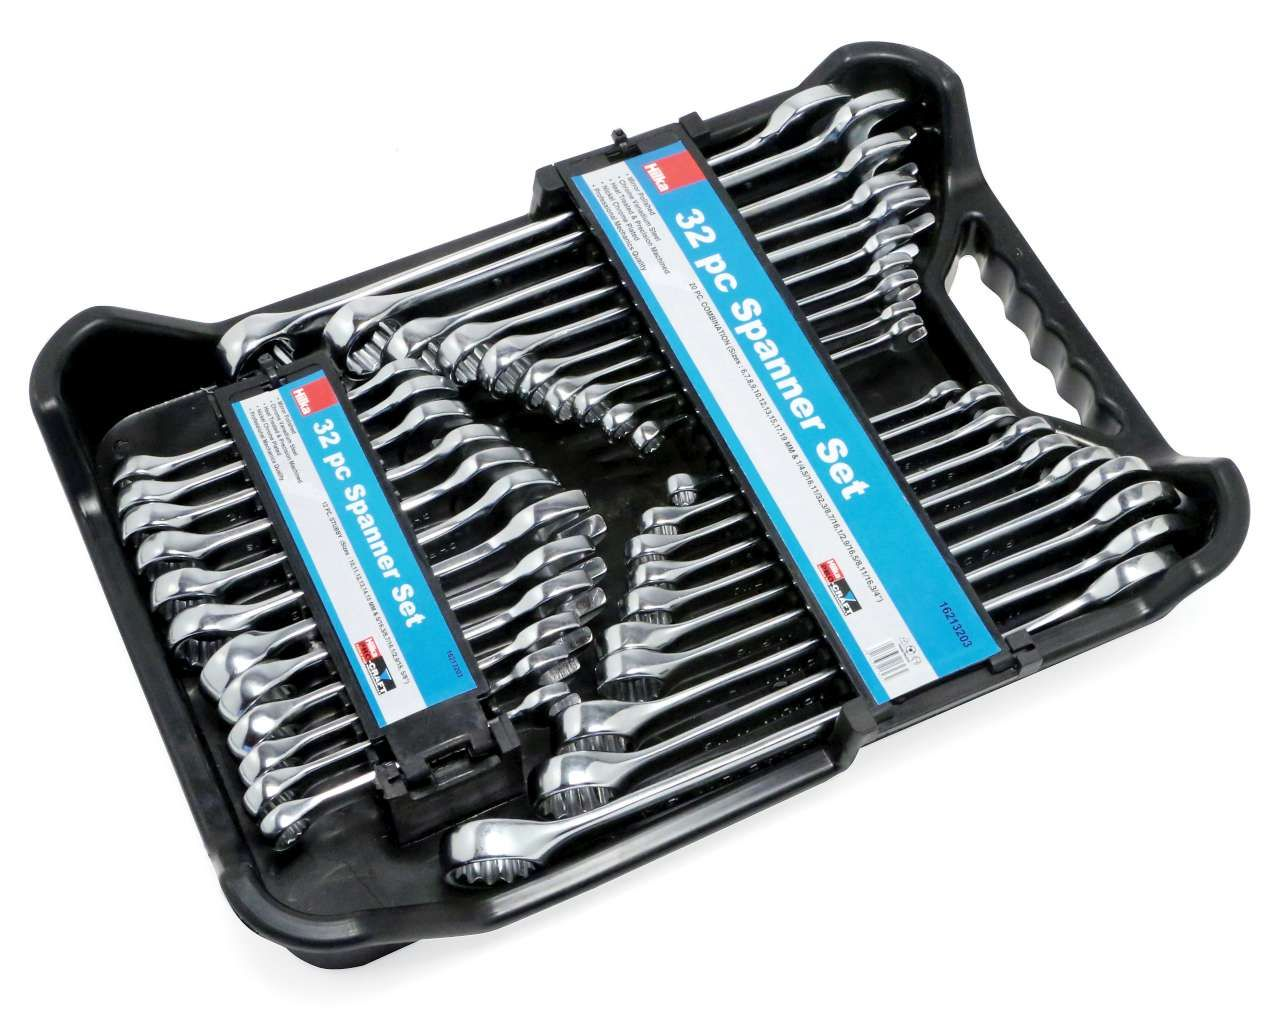 Hilka Pro Craft Combination Spanners Metric AF Pro Craft 32 Piece